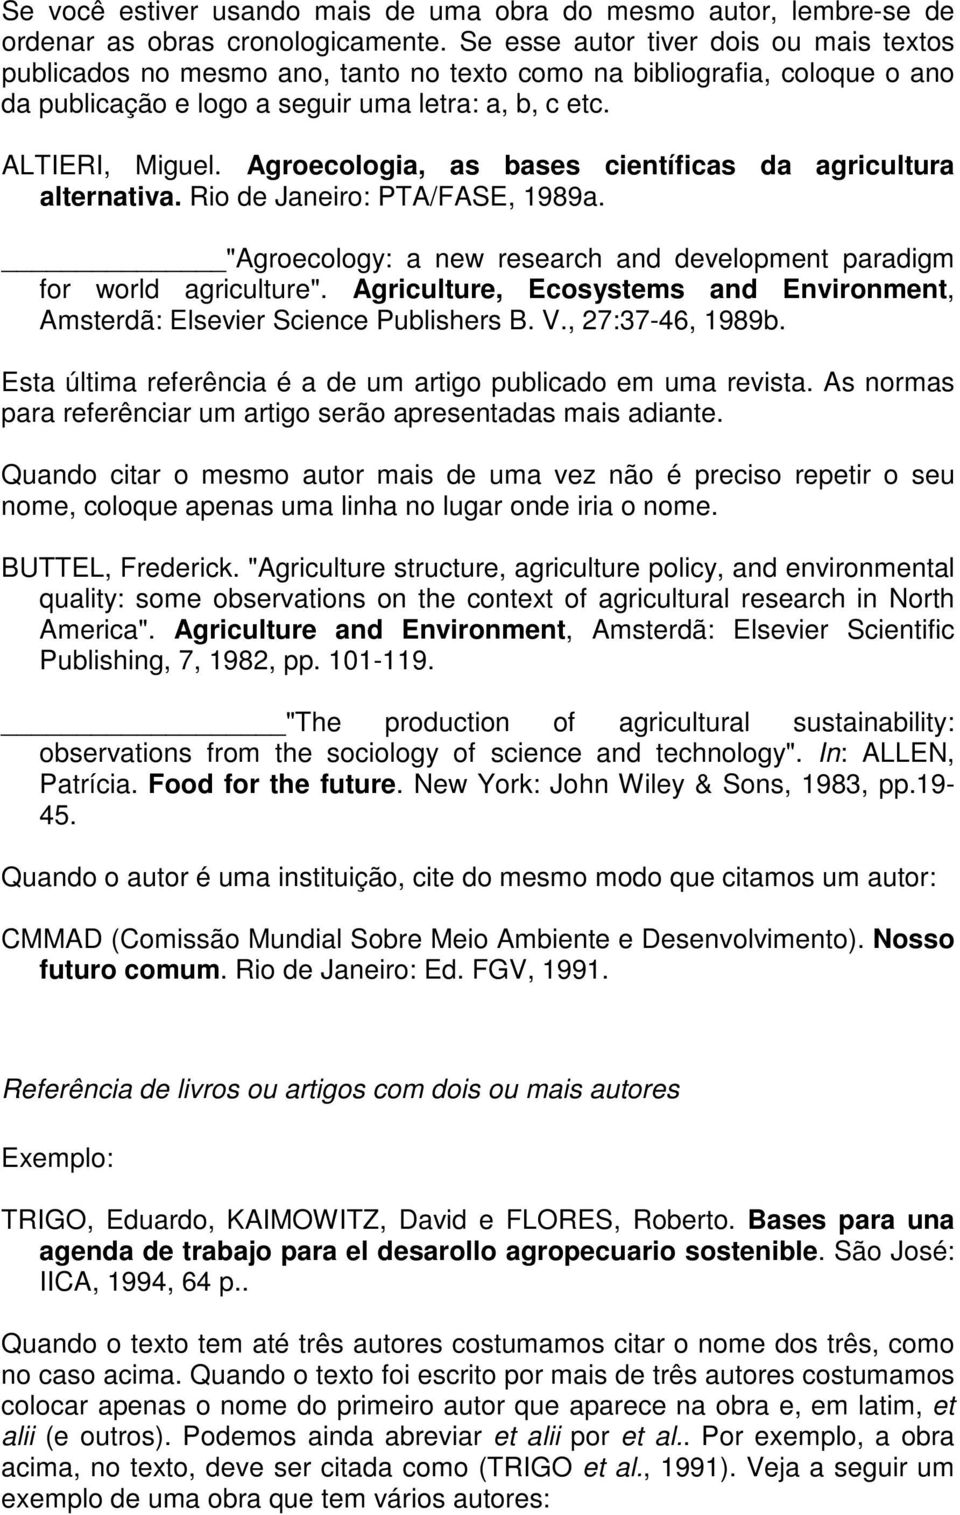 "Agroecologia, as bases científicas da agricultura alternativa. Rio de Janeiro: PTA/FASE, 1989a. ""Agroecology: a new research and development paradigm for world agriculture""."